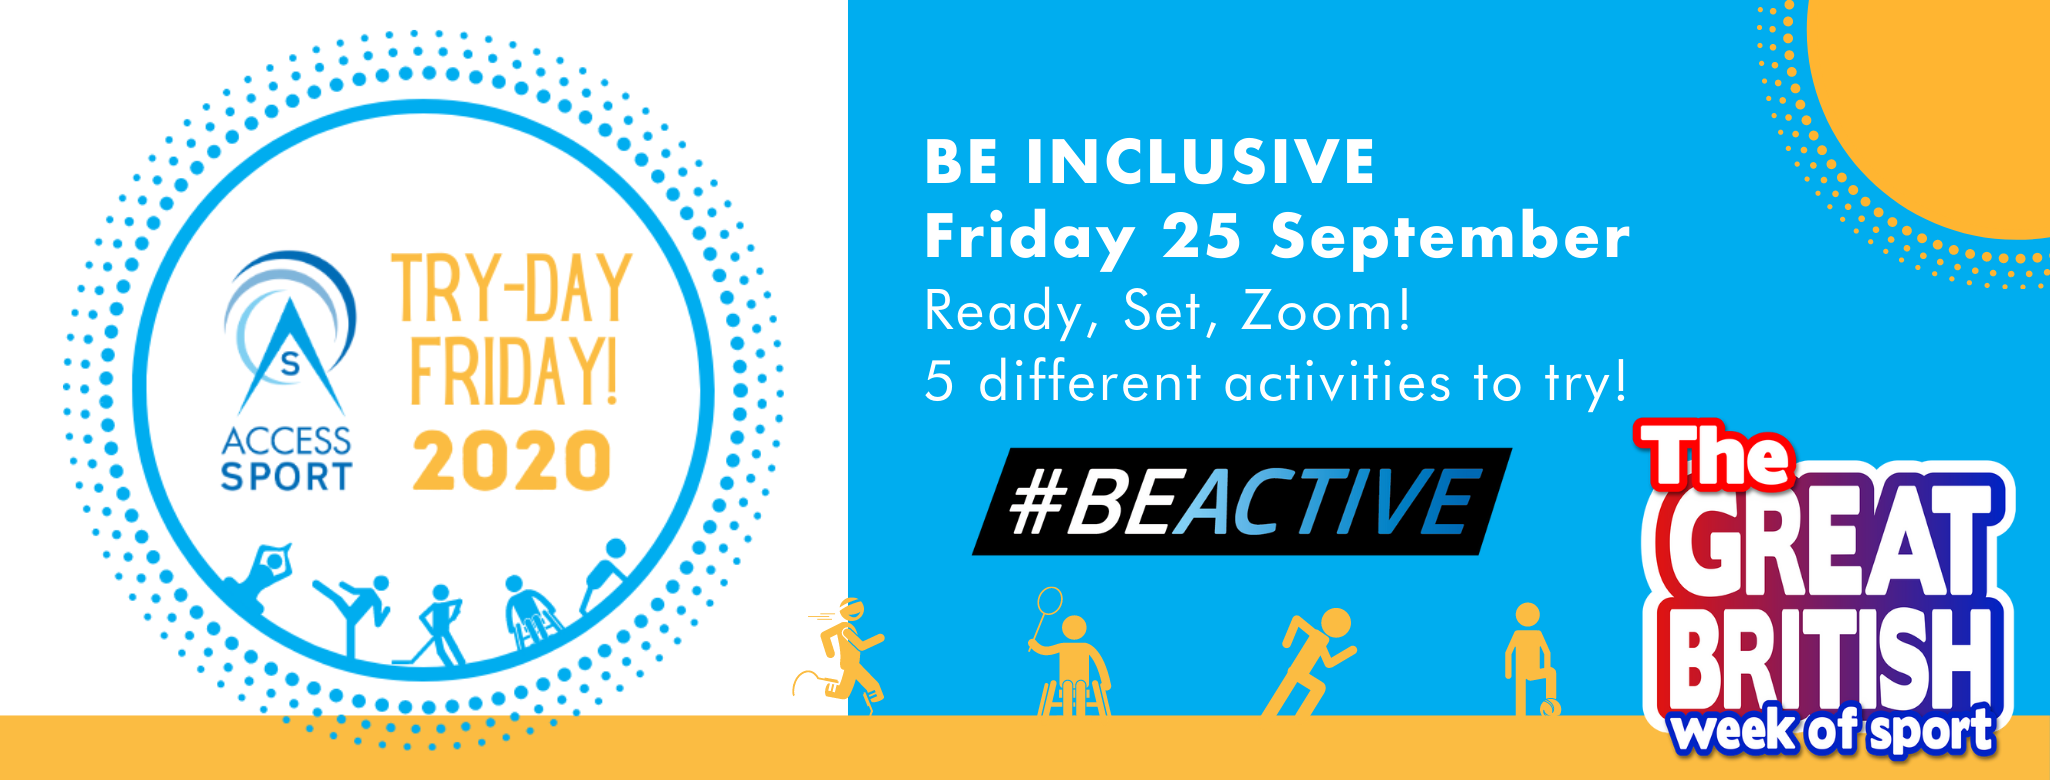 Try-Day Friday 2020. Friday 25 September. Ready, Set, Zoom! 5 different activities to try. #BeActive